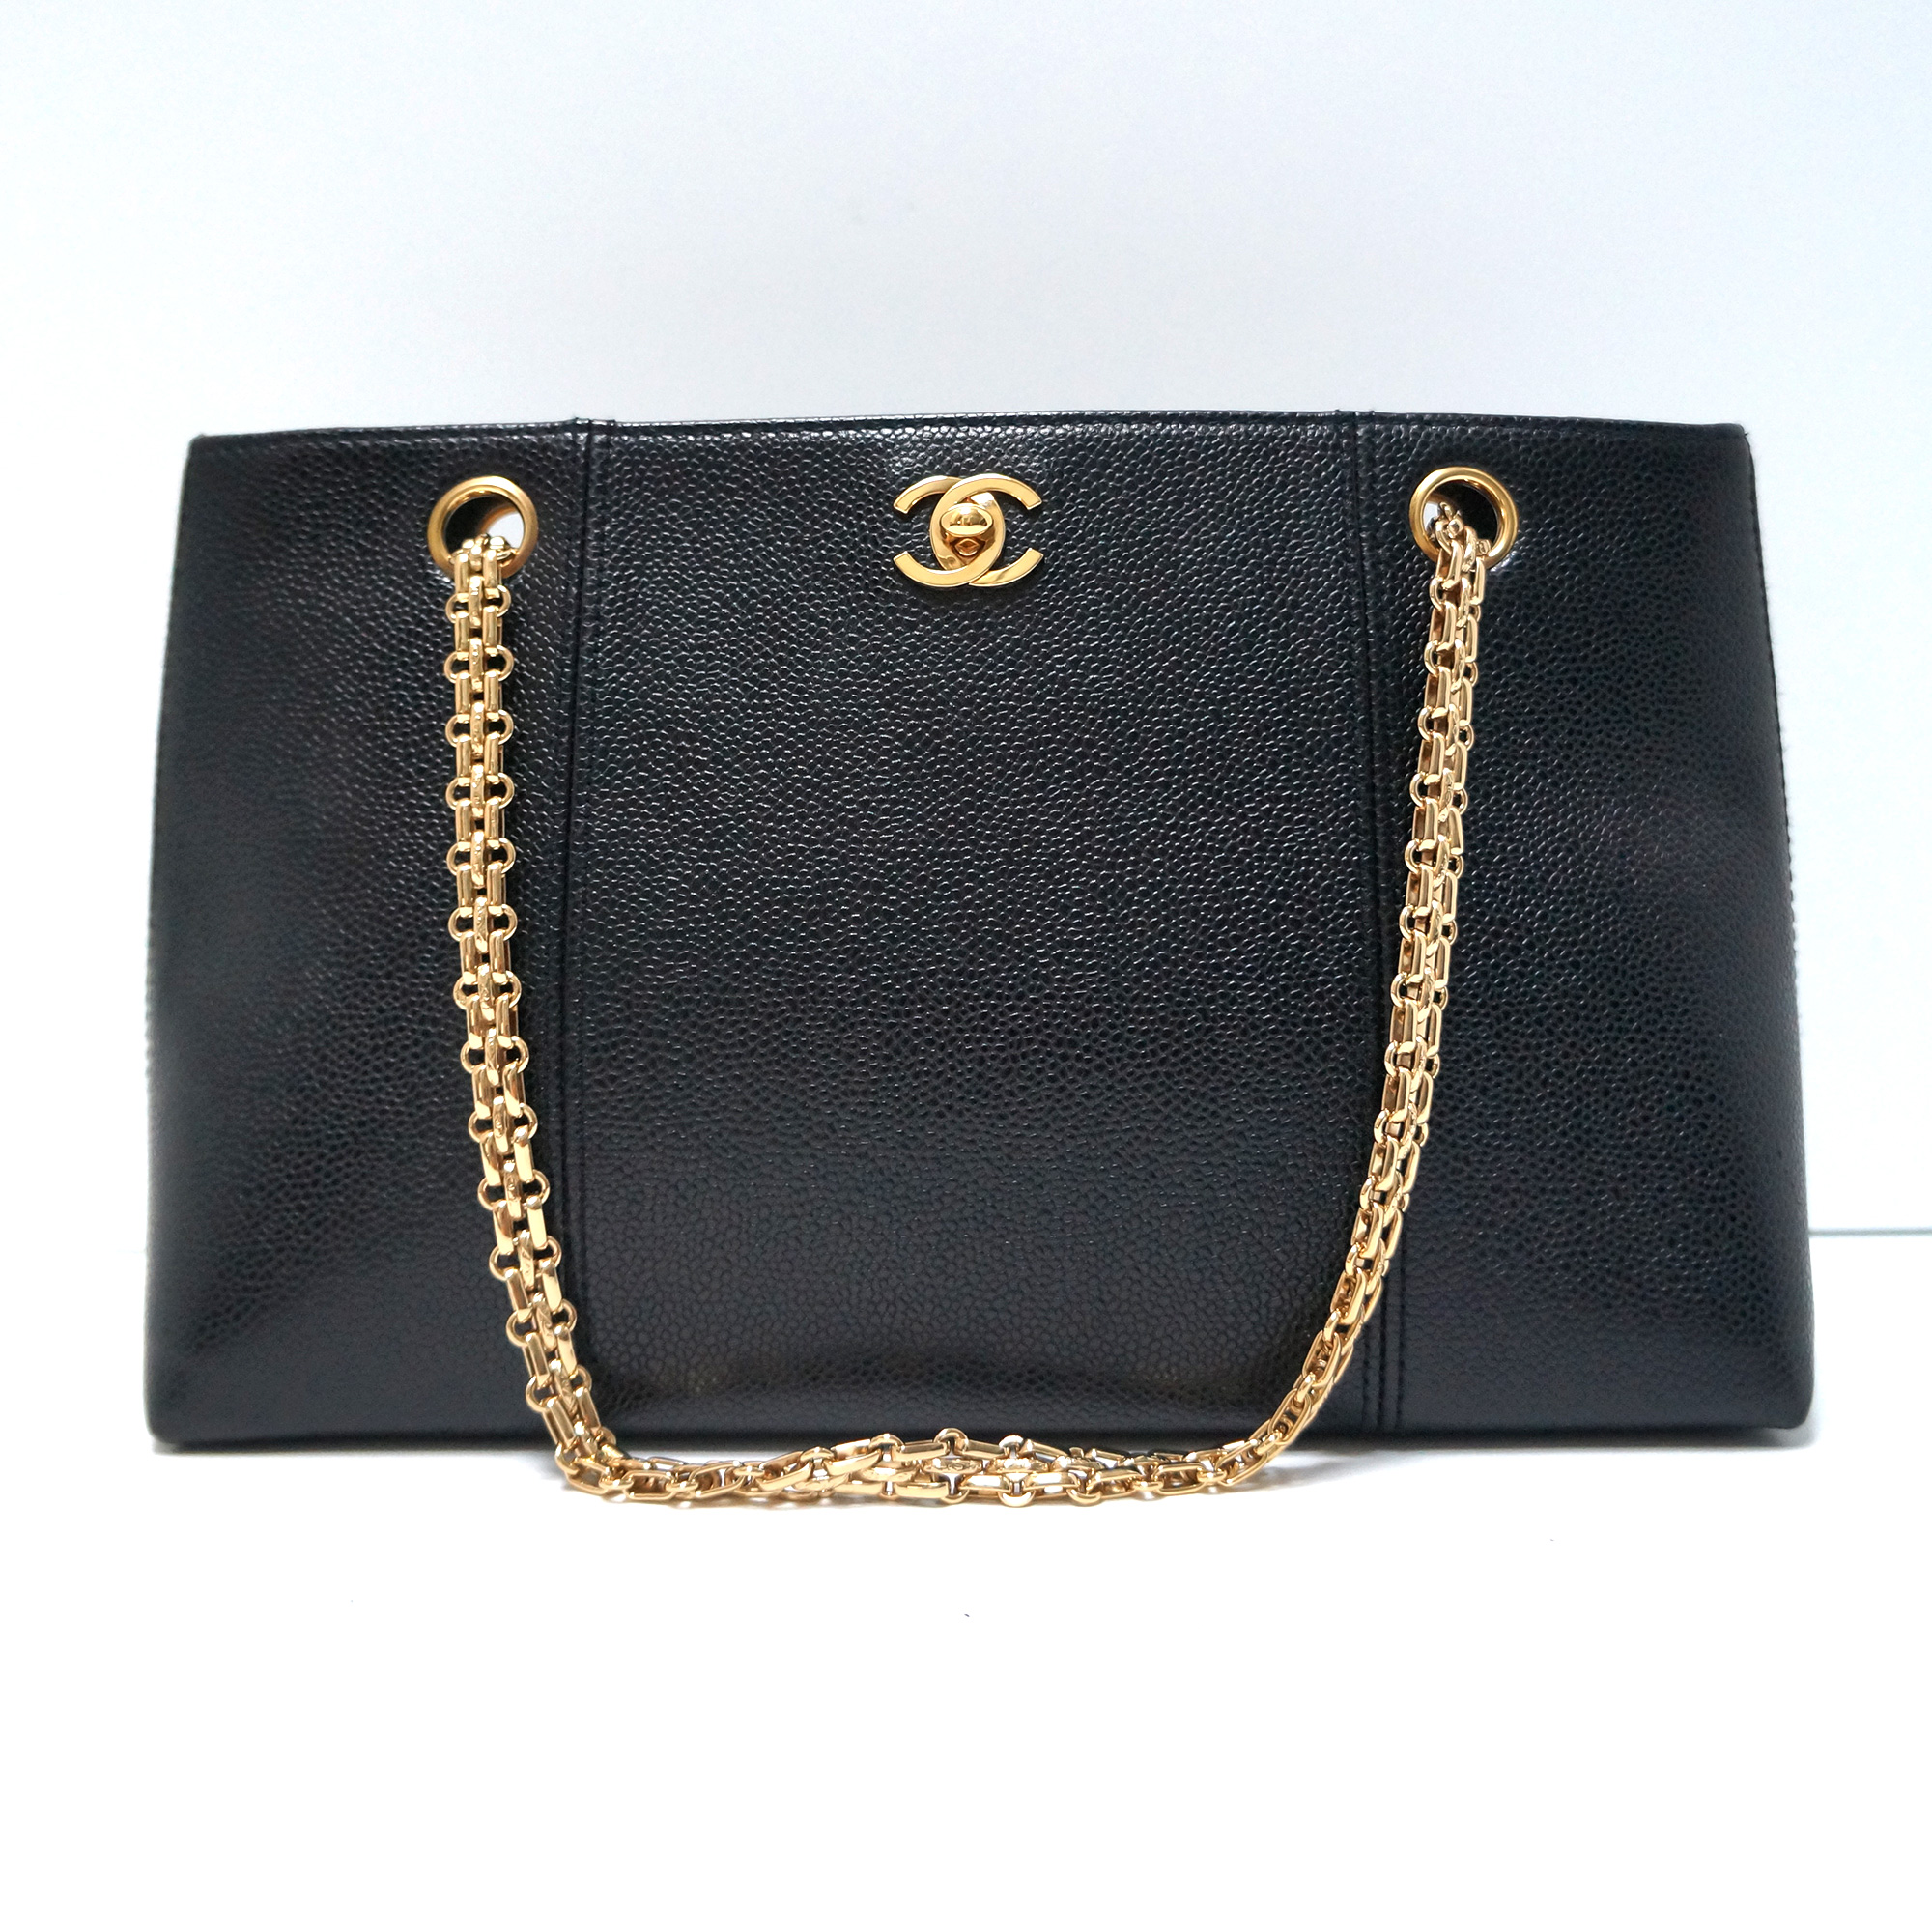 Chanel Vintage Caviar Leather Tote